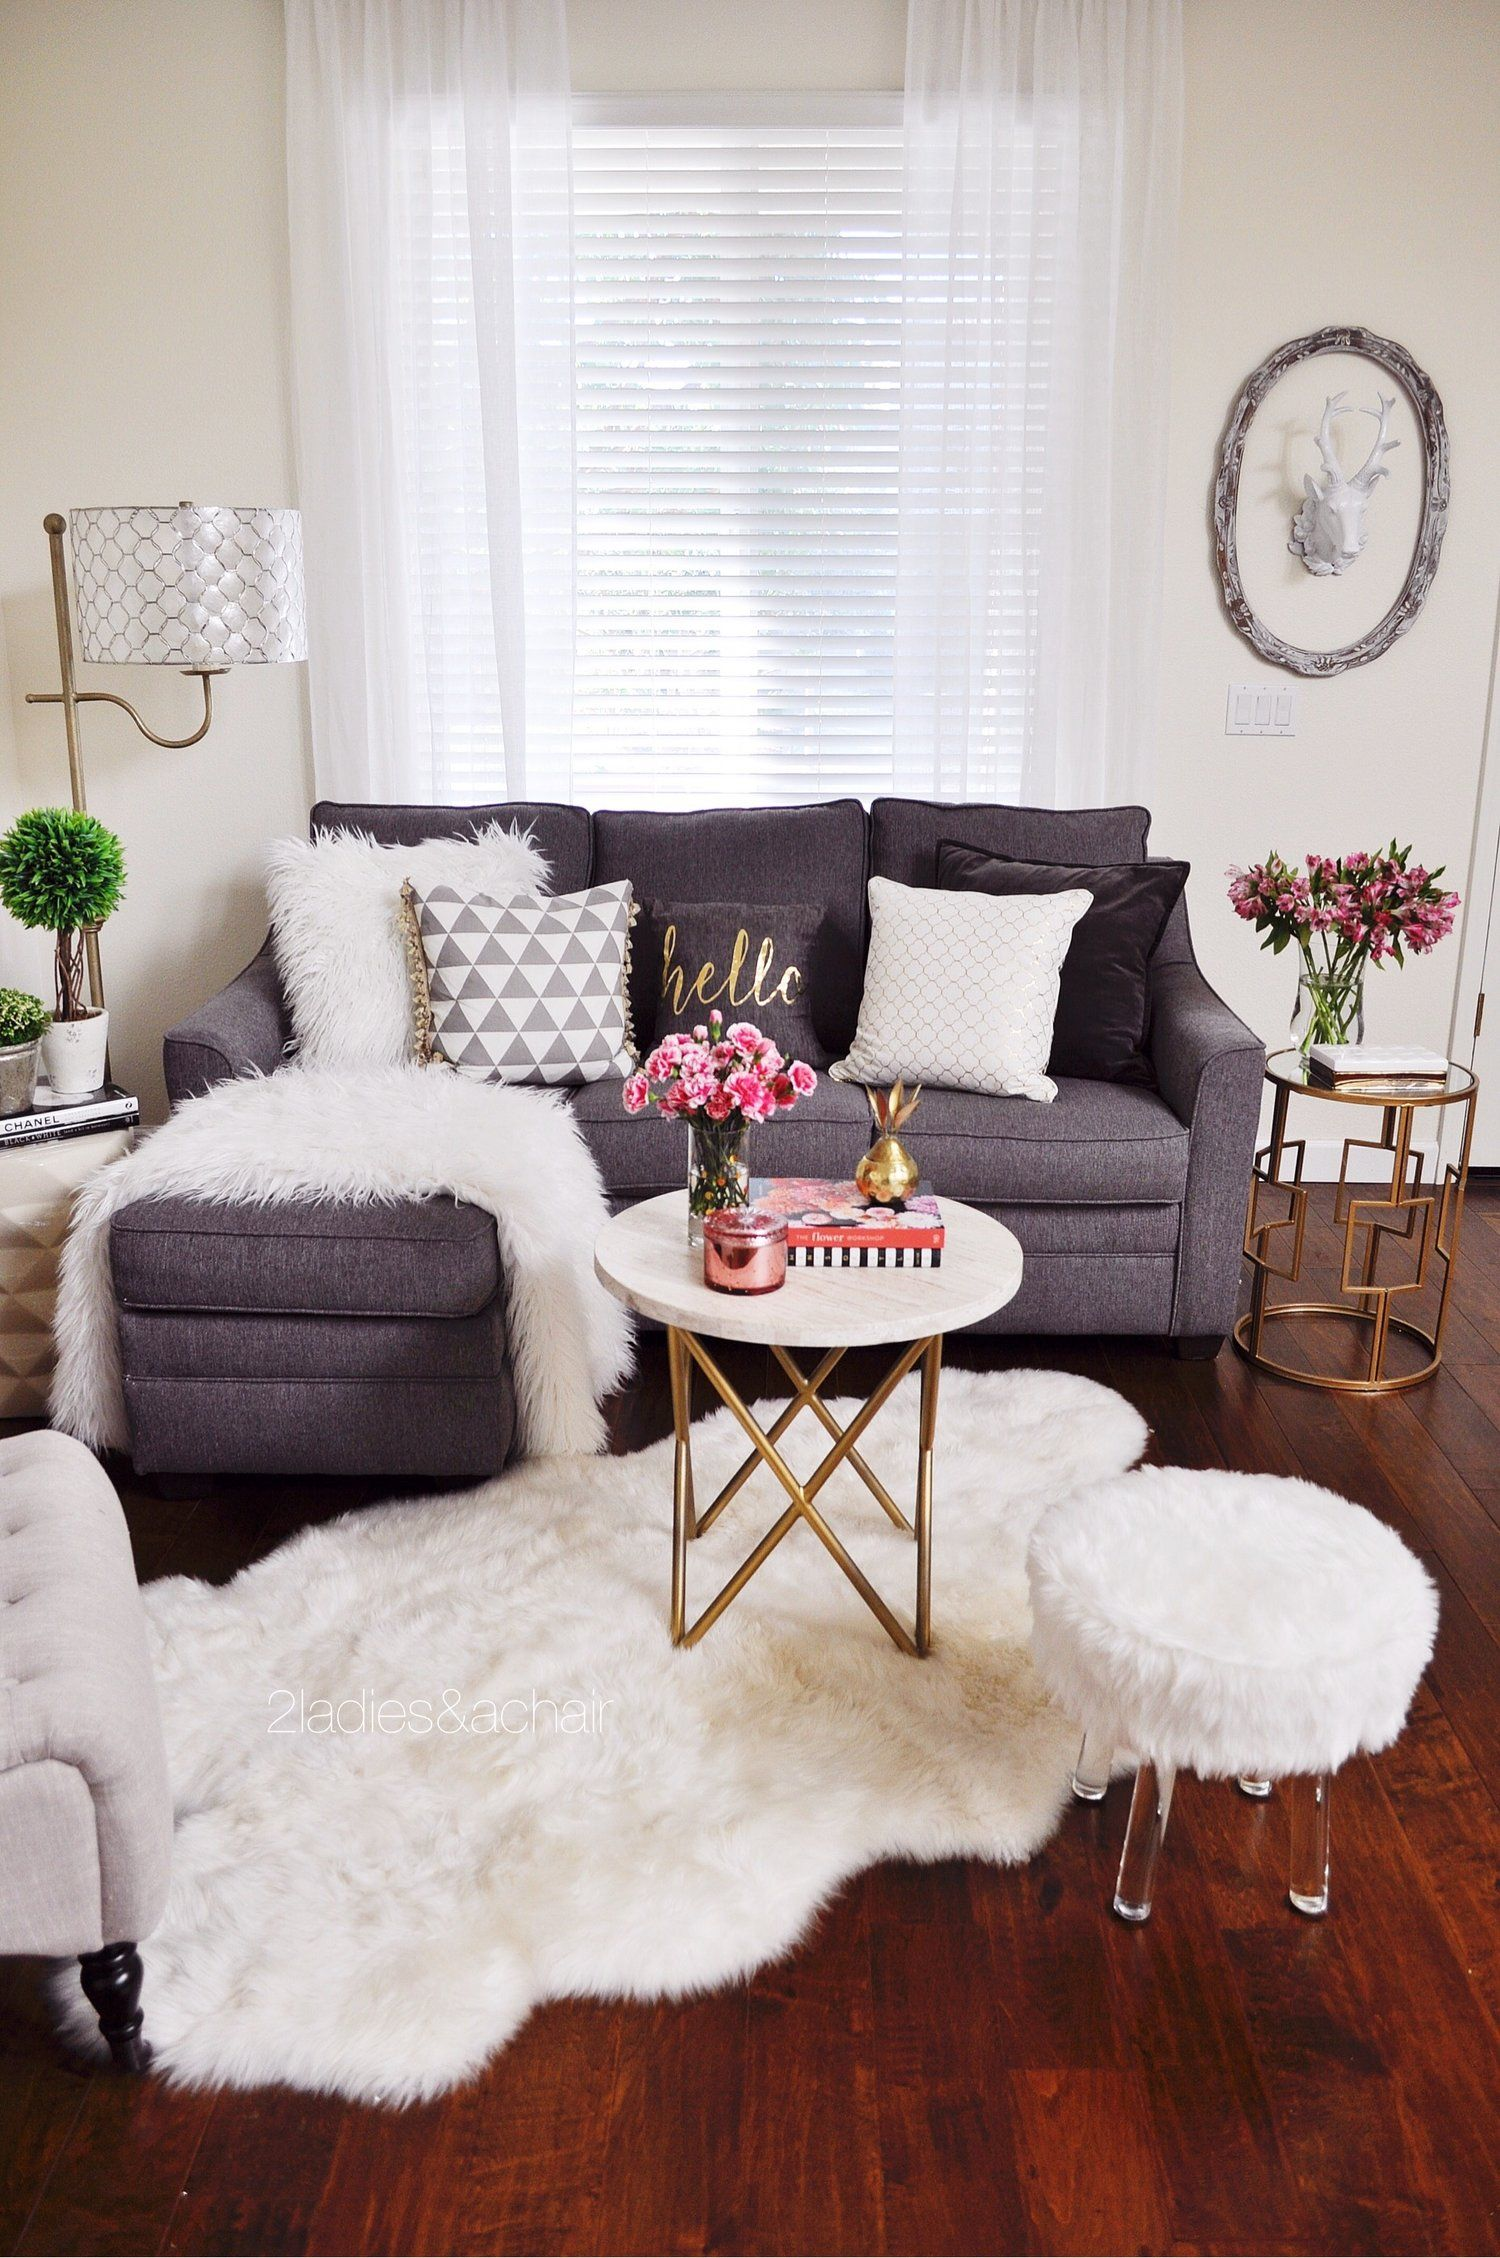 Light, Bright, and Cozy Decor Transitions from the Holiday Season — 2  Ladies & A Chair | Small apartment living room, Small living room decor, Apartment  living room